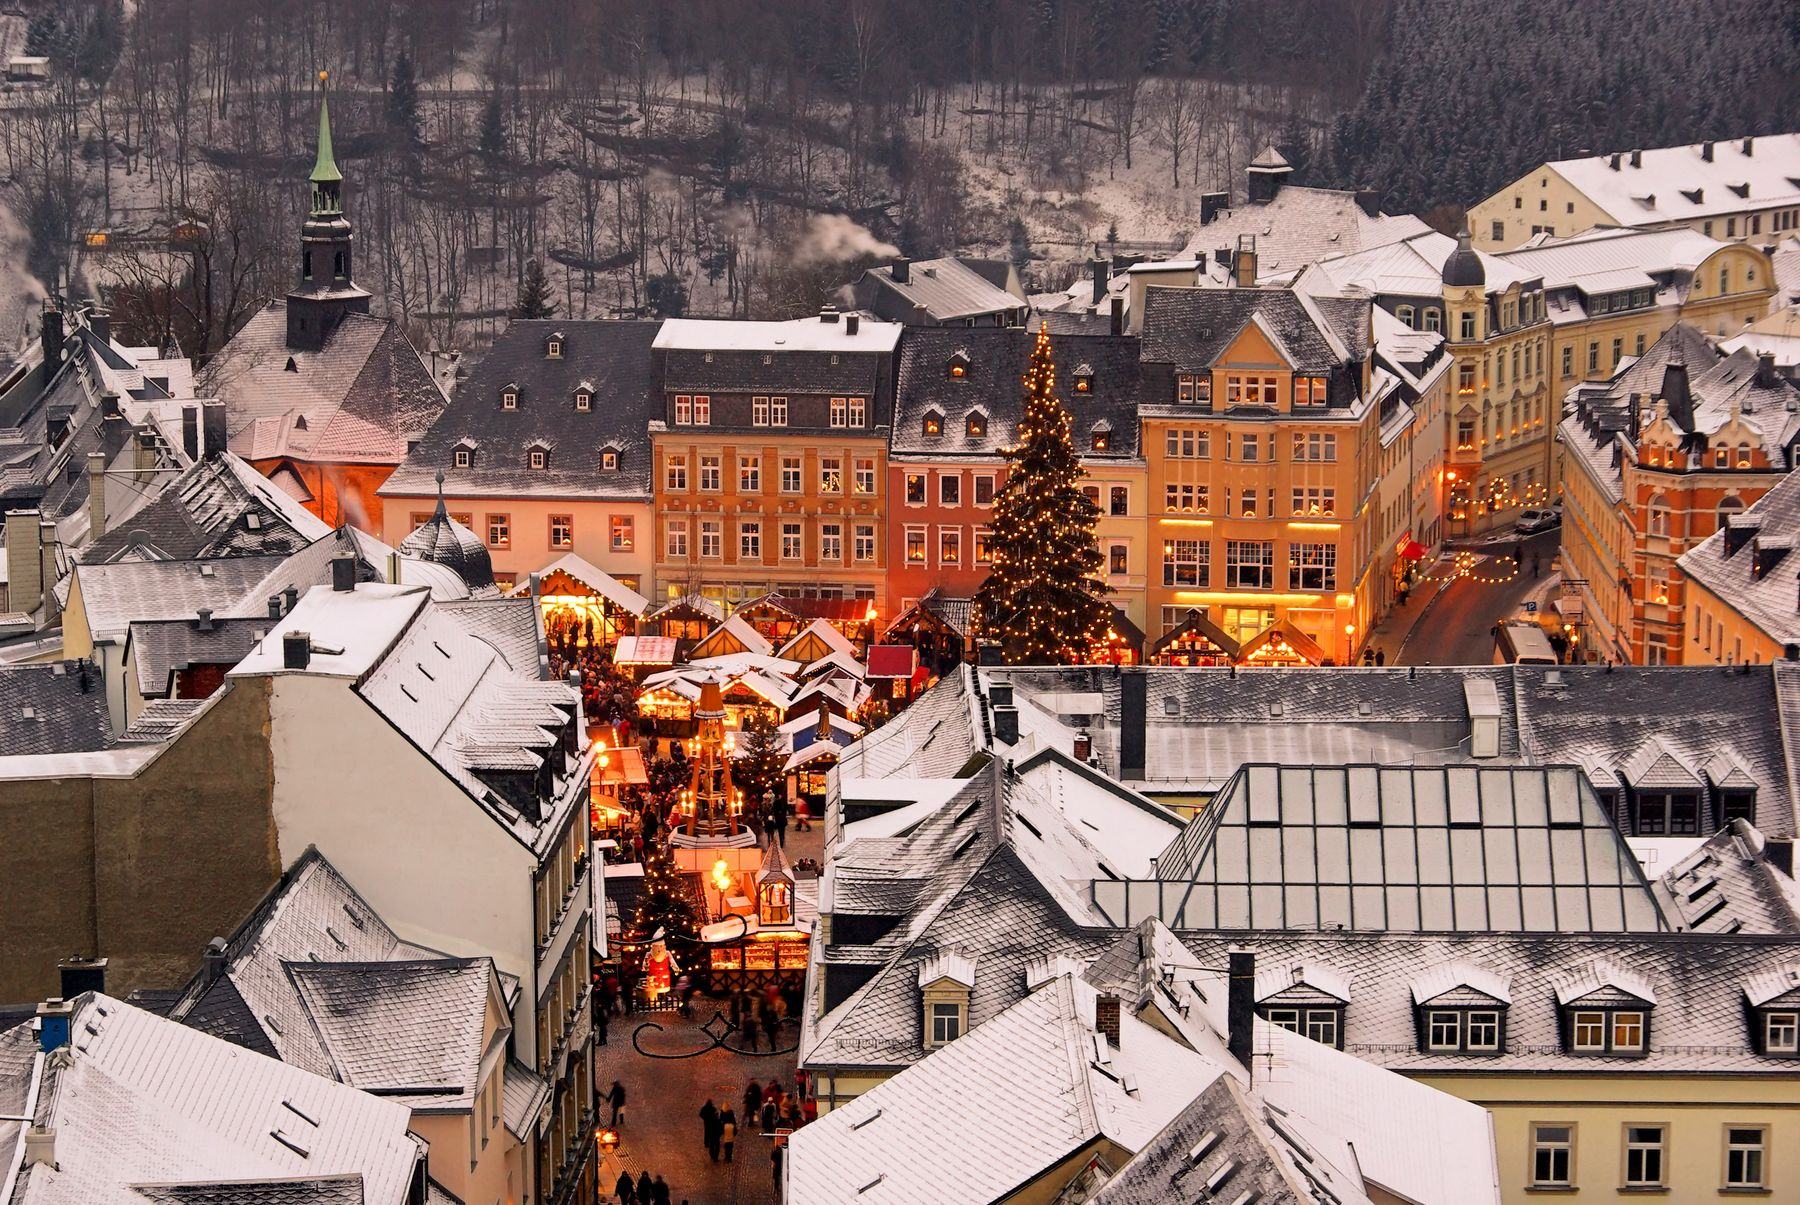 the snow top of buildings surround a street level market which glows red and gold with christmas magic